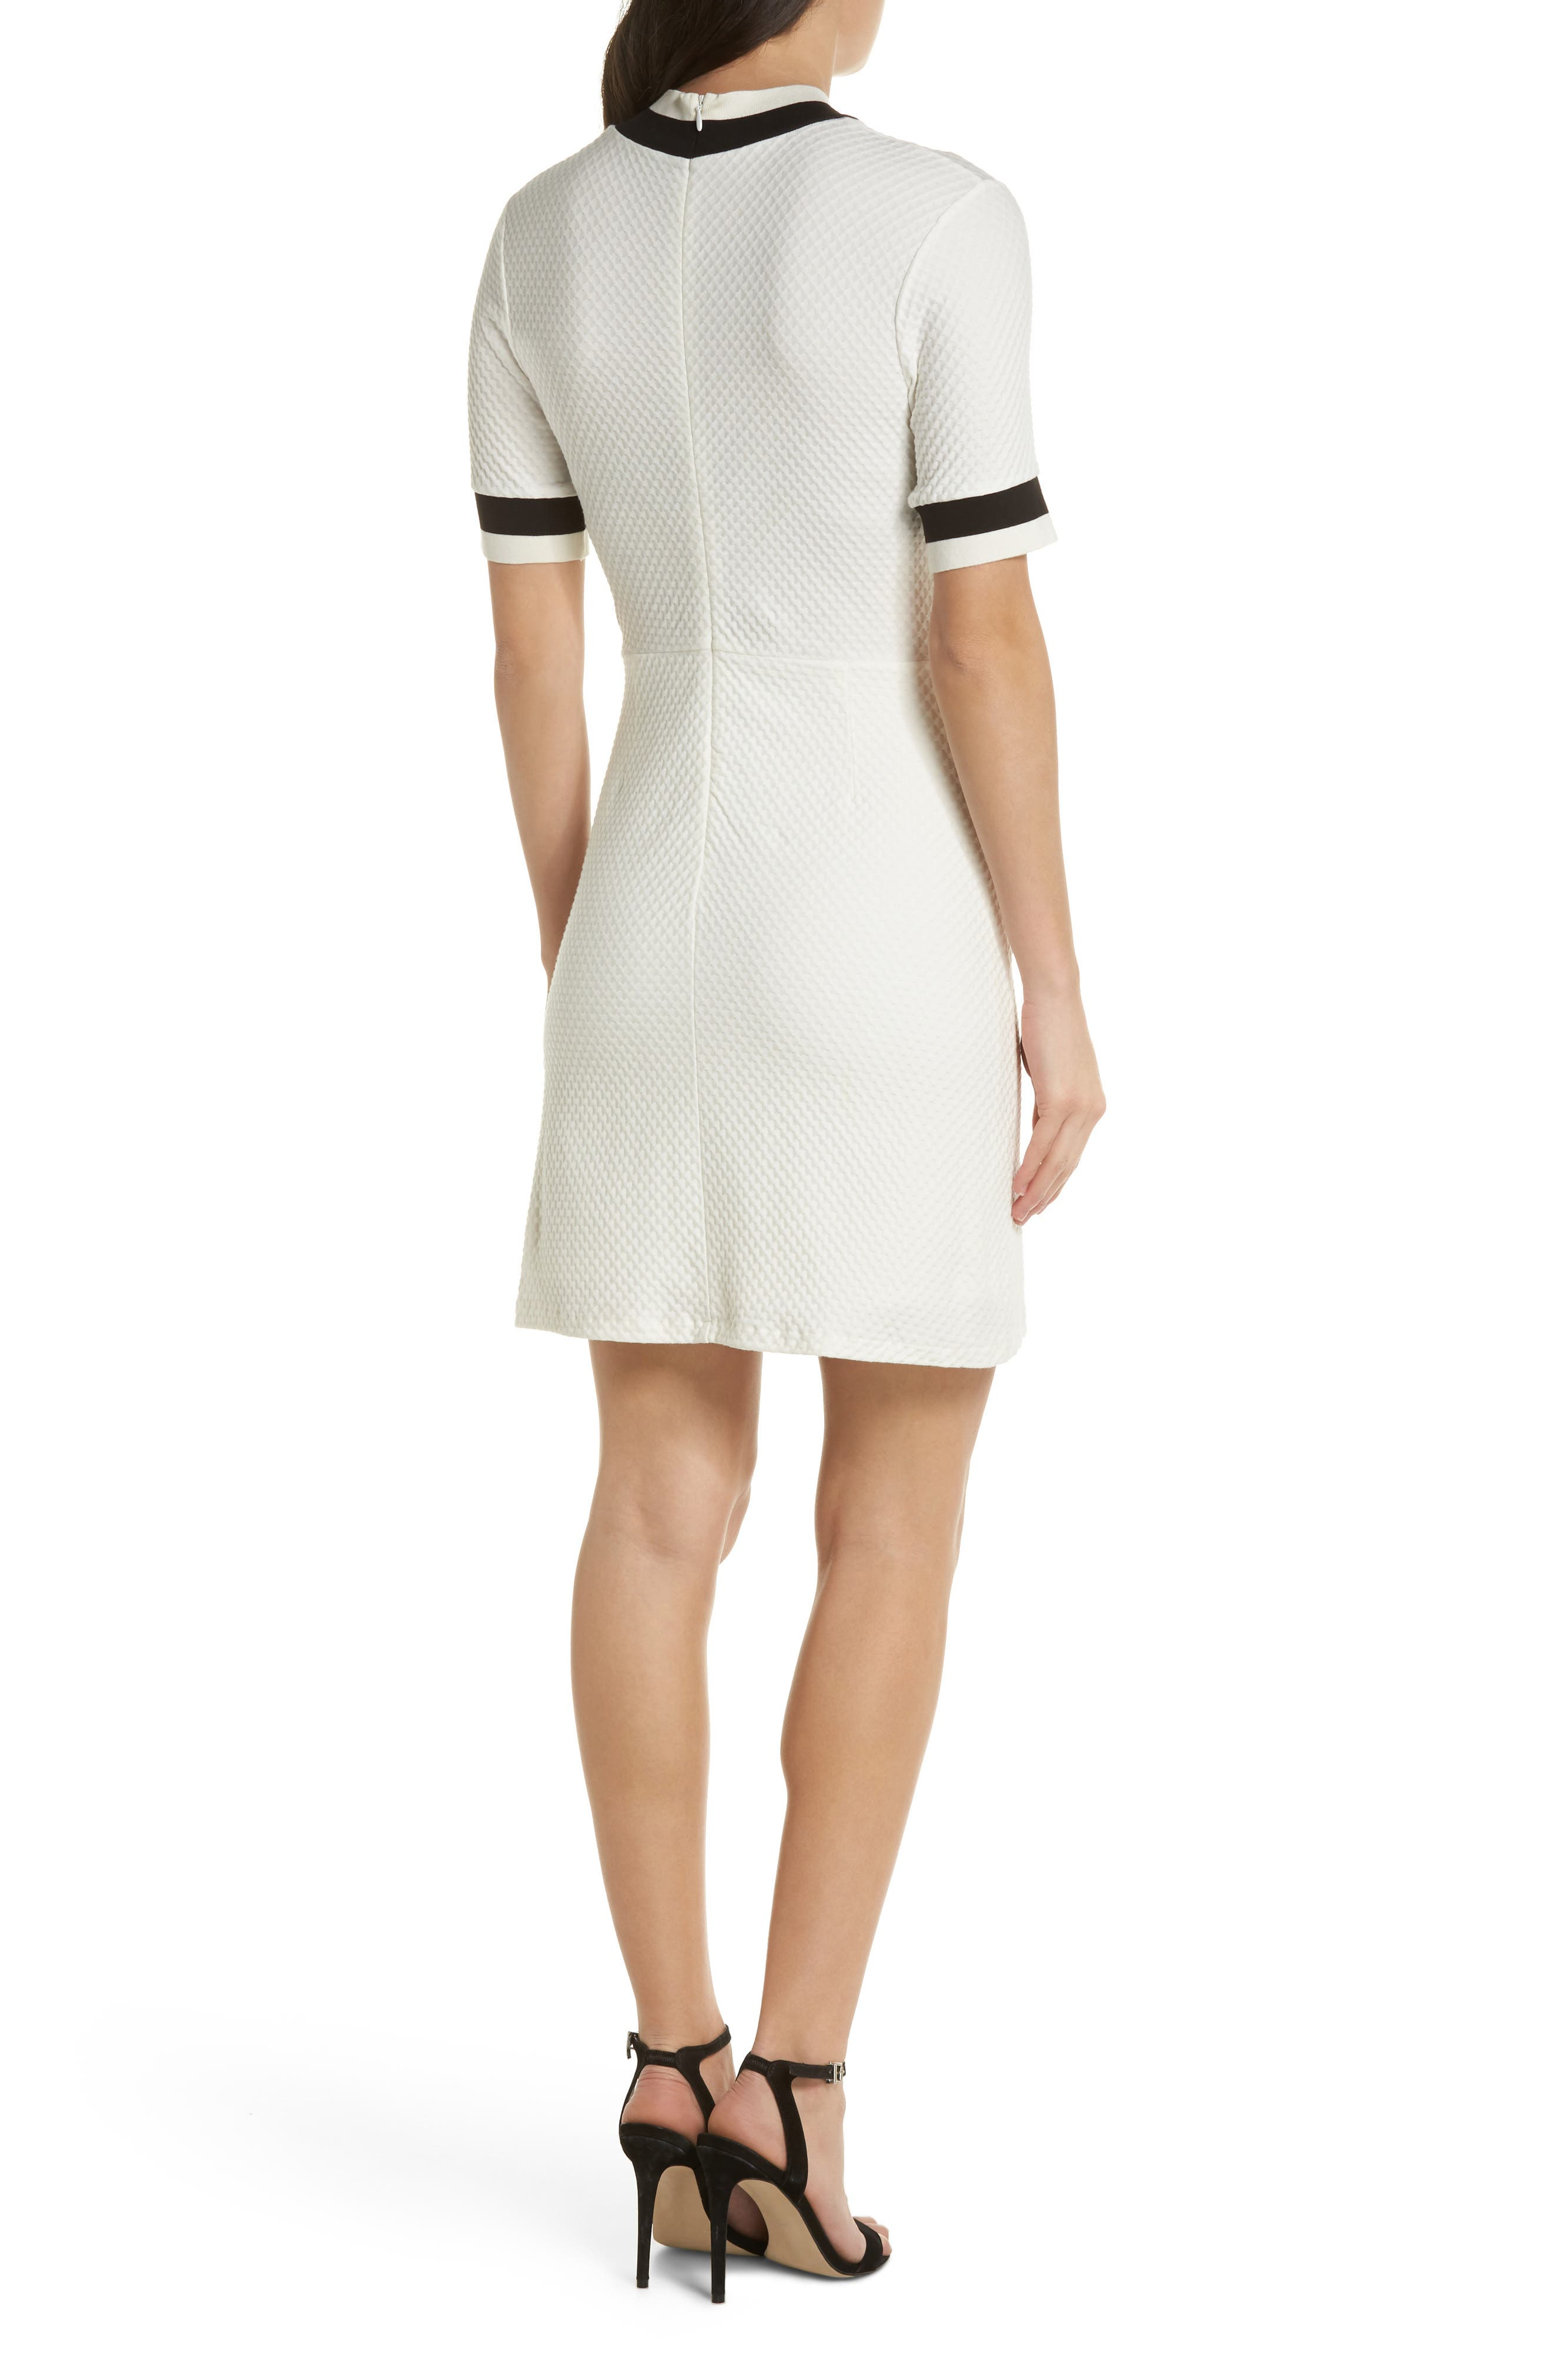 FRENCH CONNECTION, Savos Sudan Jersey Dress, Alternate thumbnail 2, color, BLACK/ SUMMER WHITE